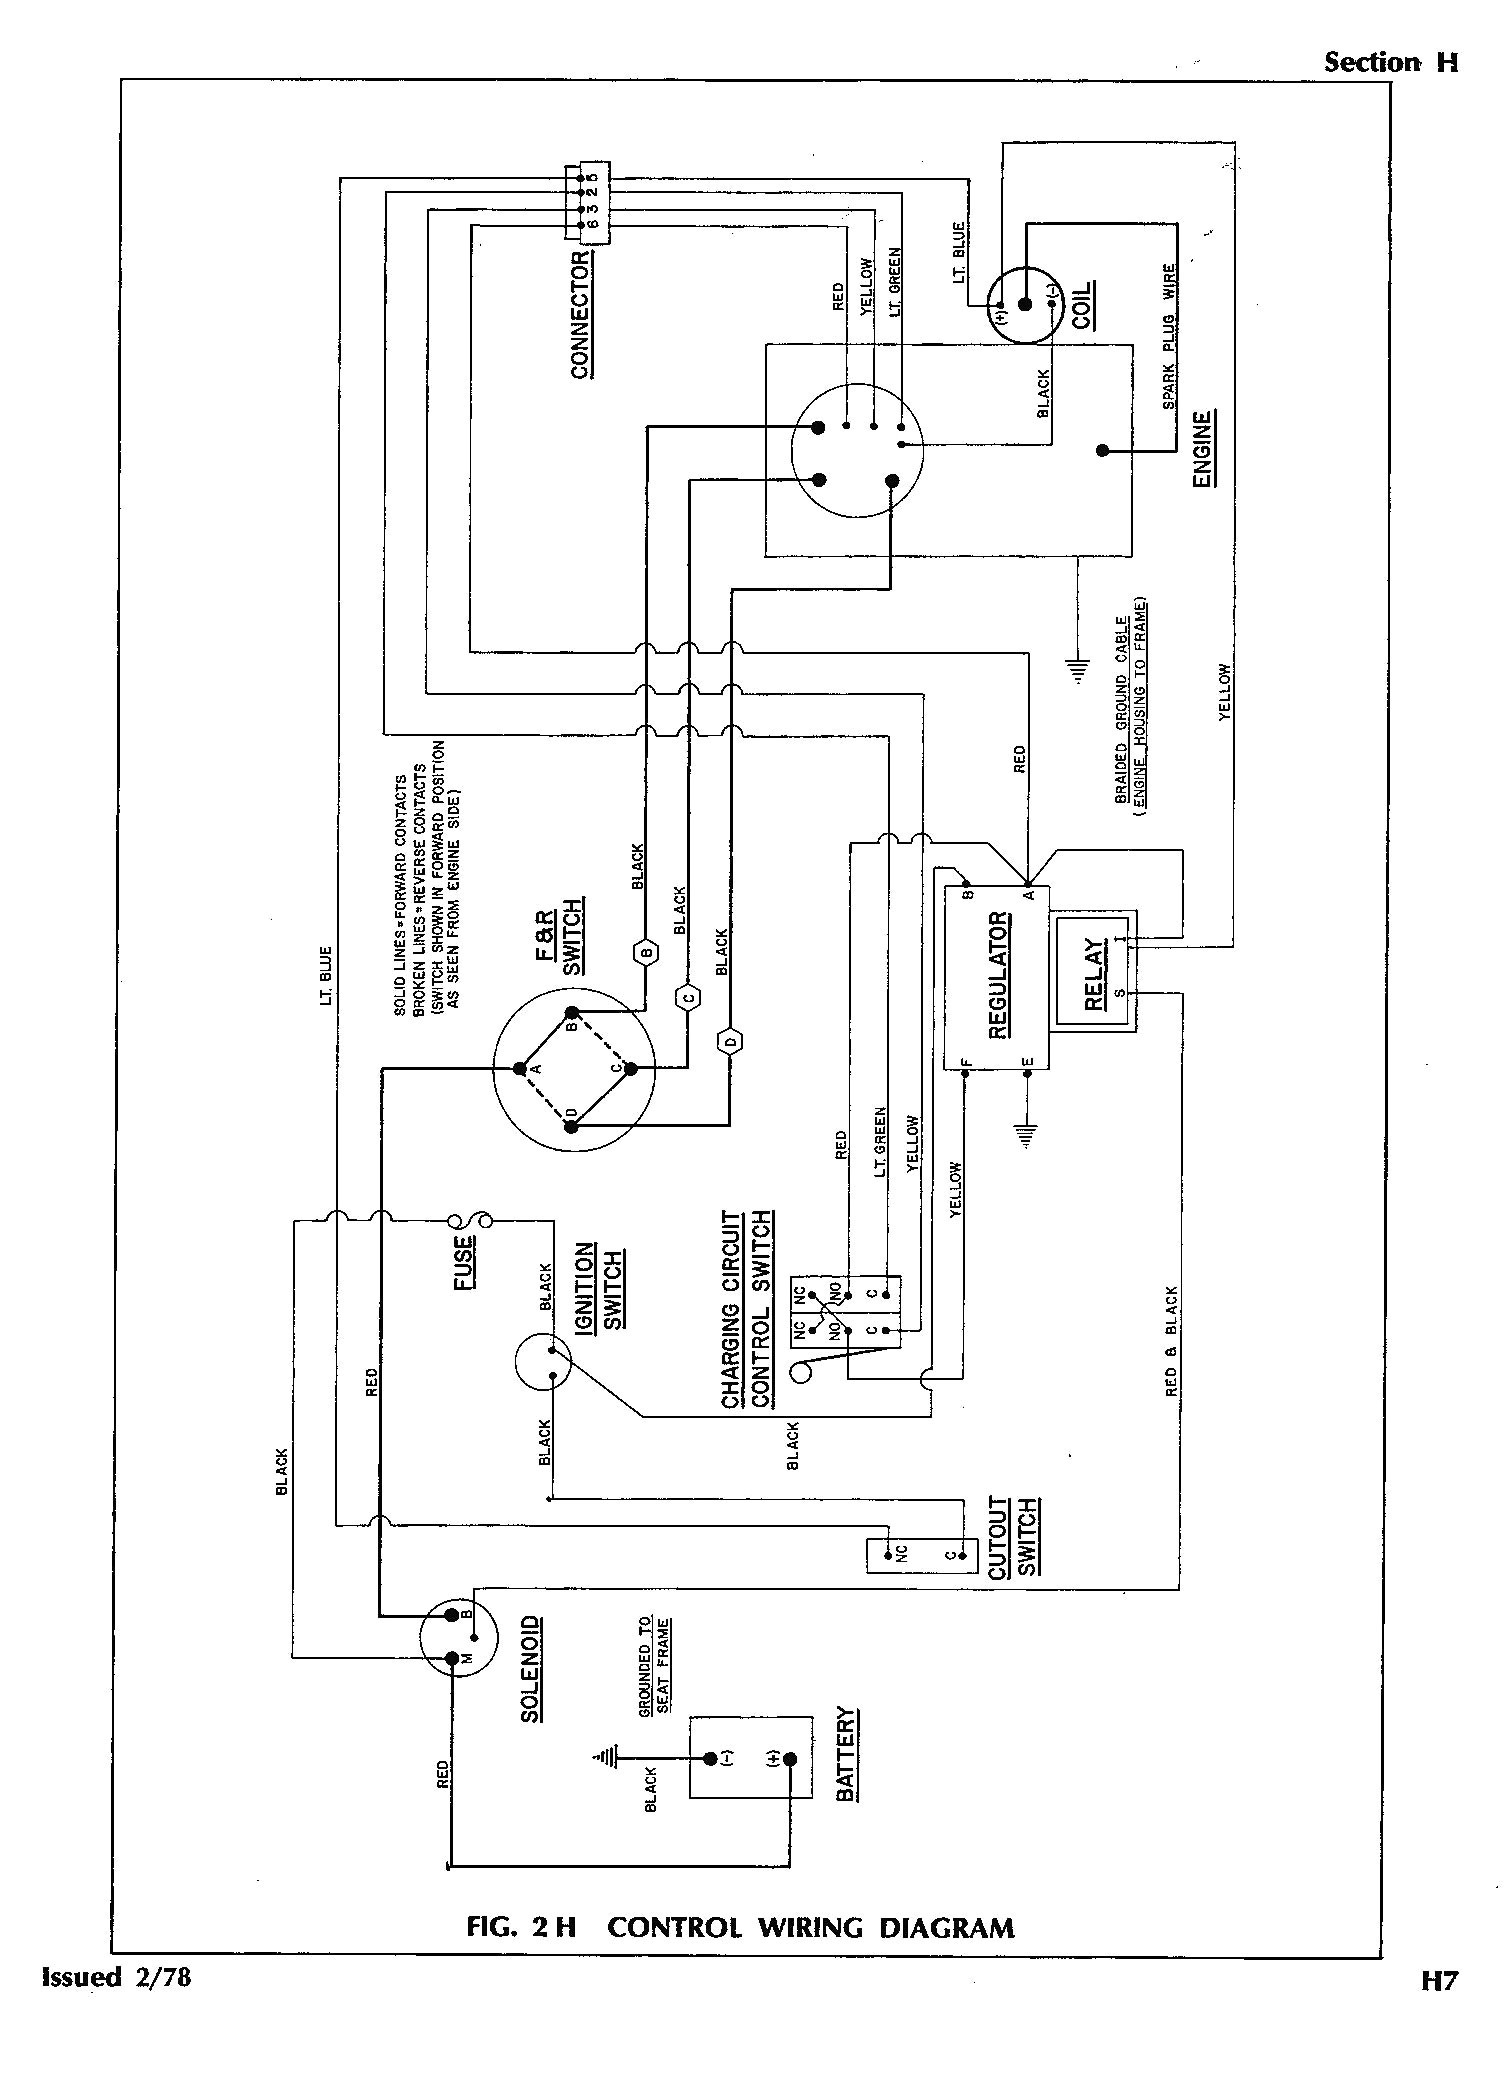 Ezgo Pb6 Golf Cart Wiring Diagram